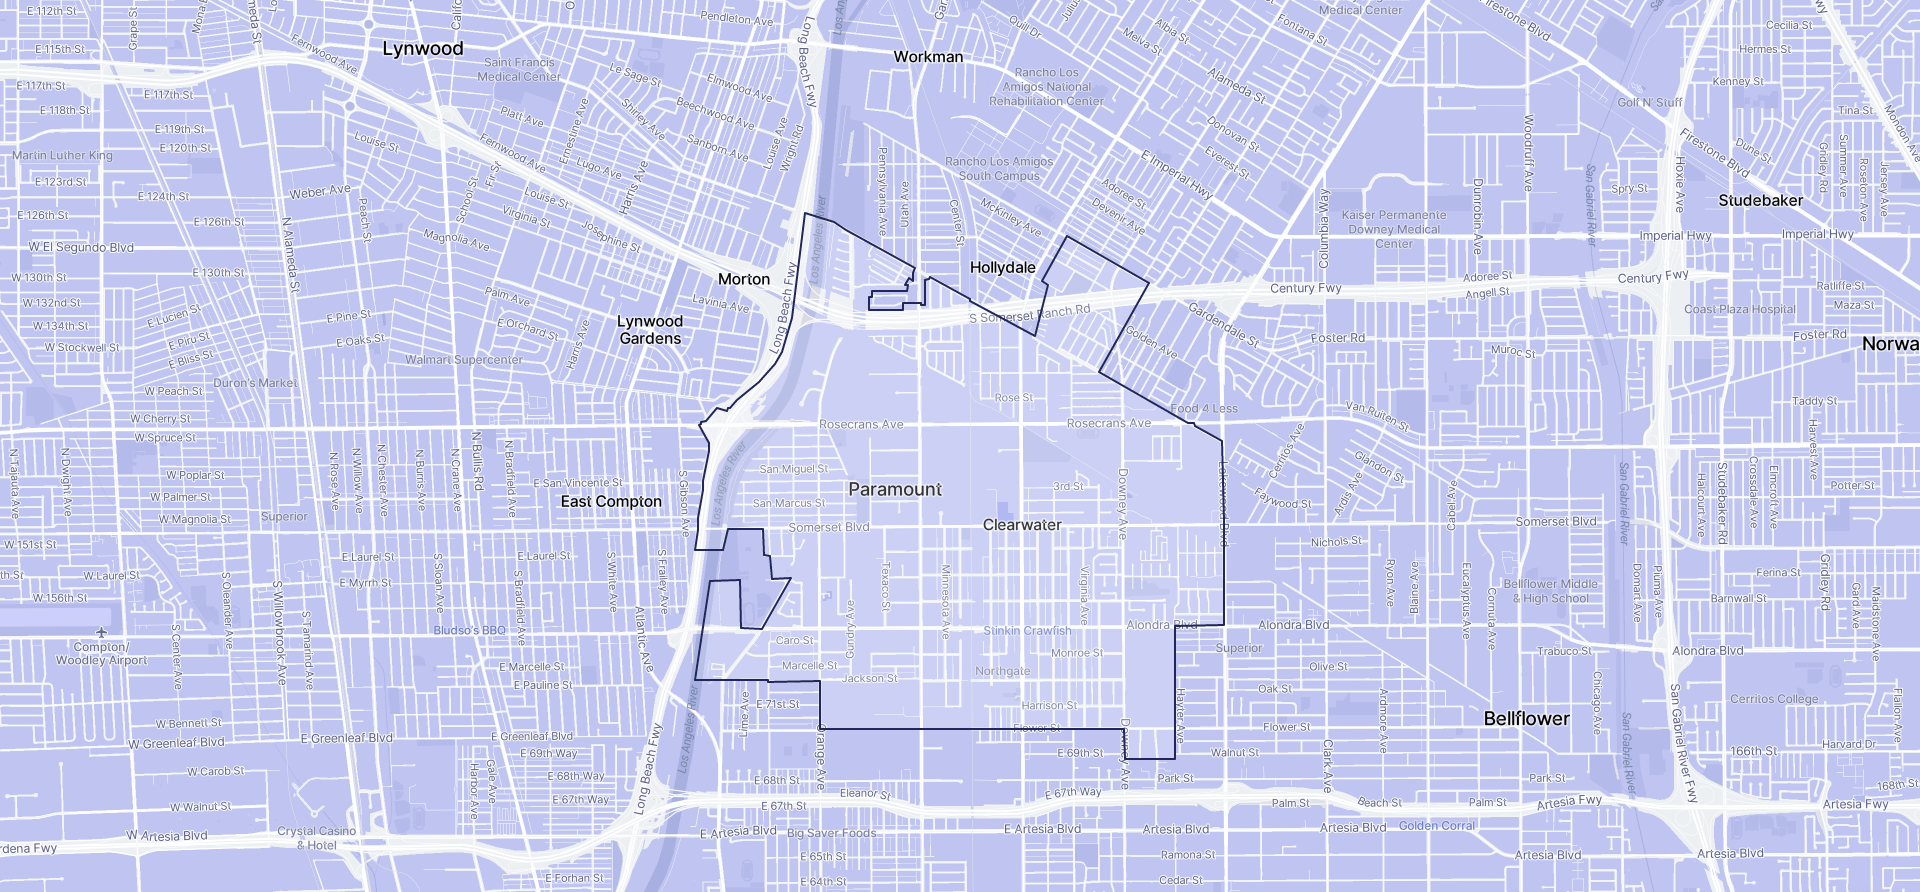 Image of Paramount boundaries on a map.